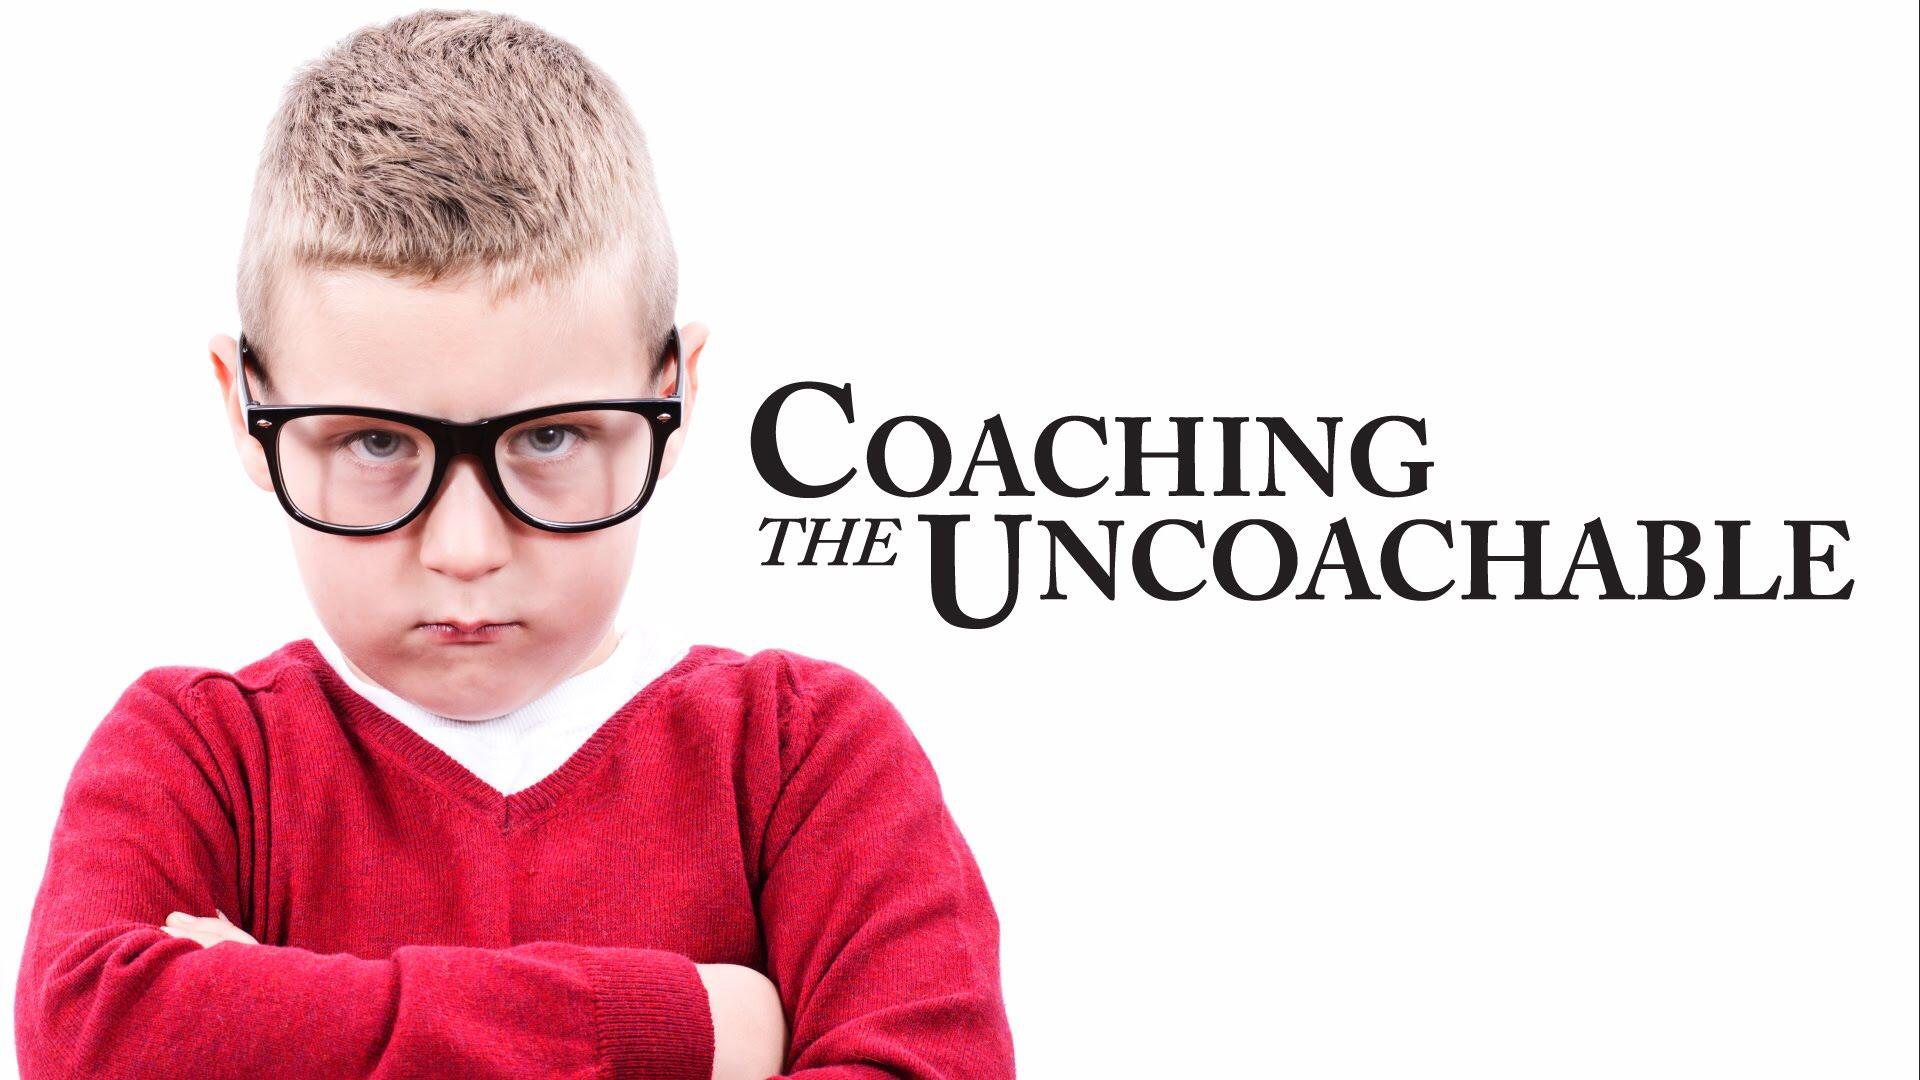 Can the uncoachable be coached ?